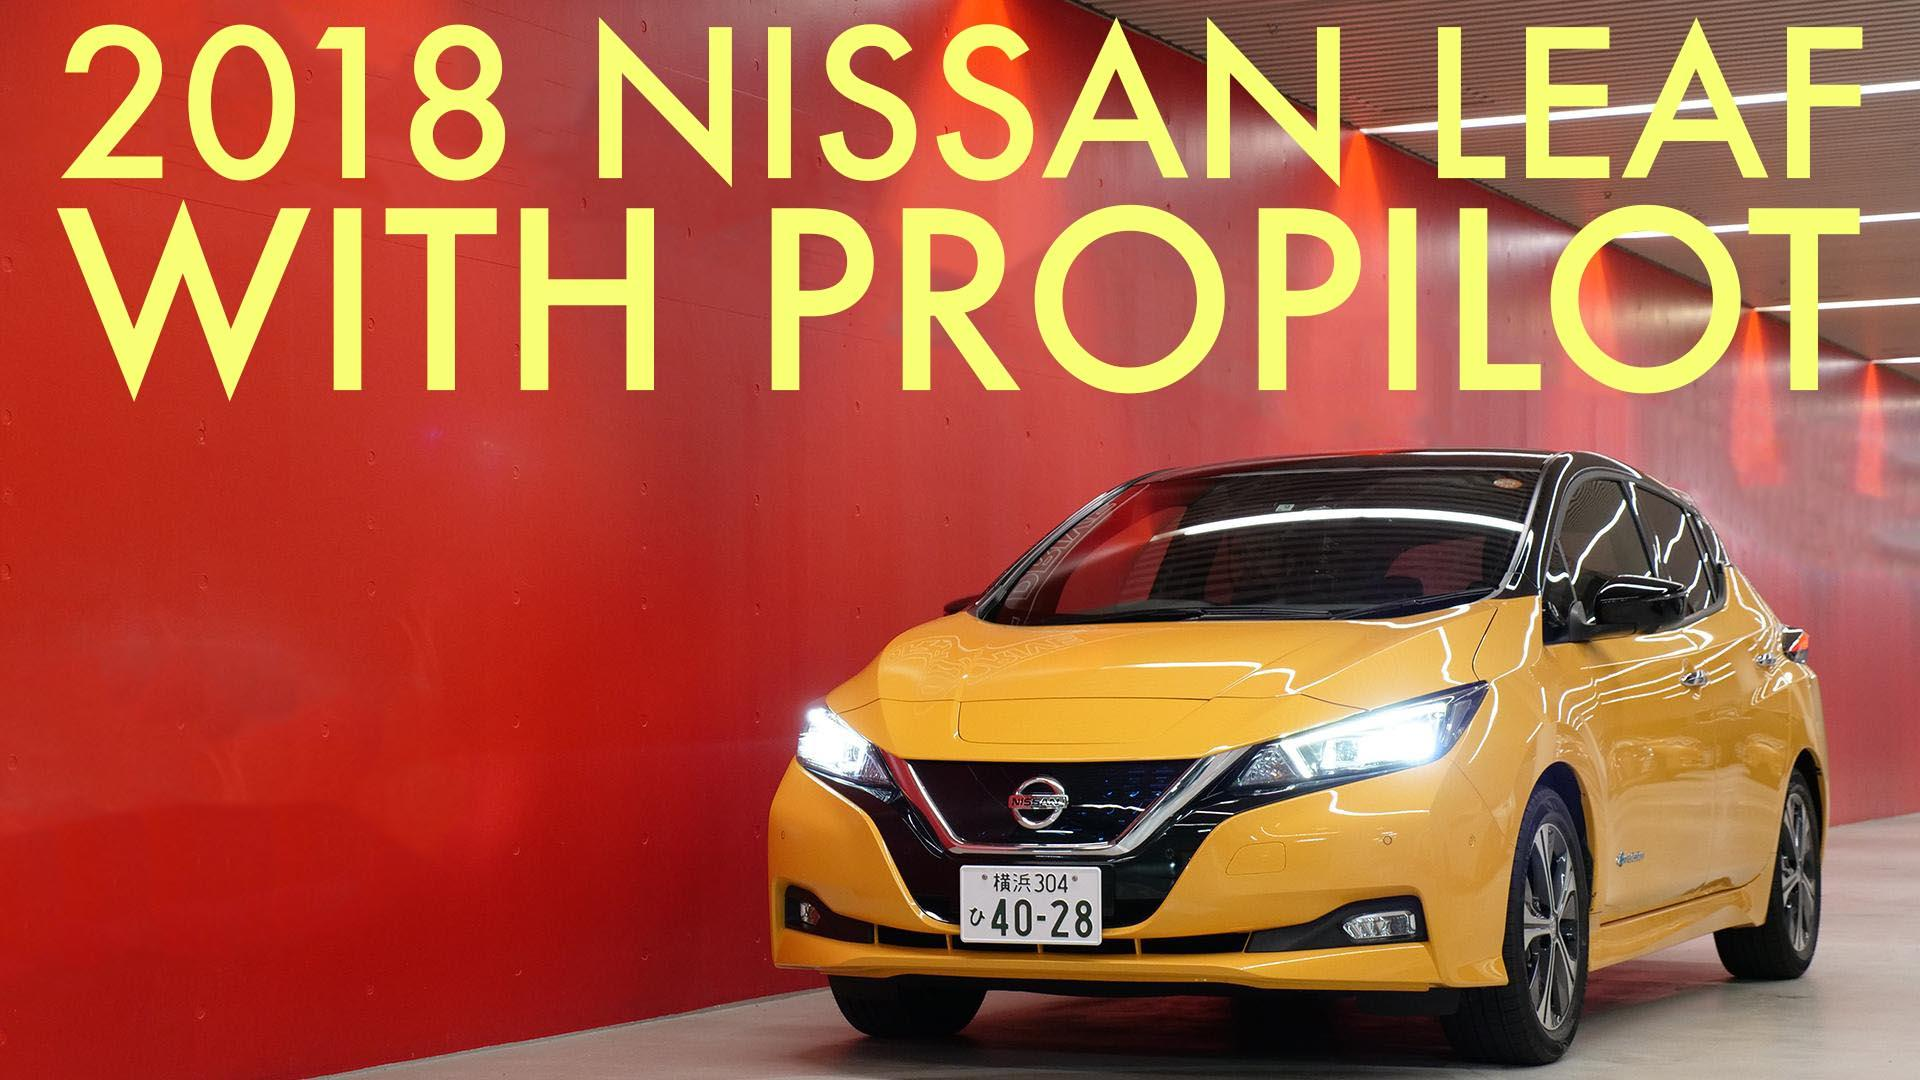 Fire risk prompts Nissan to recall over 215,00 SUVs and